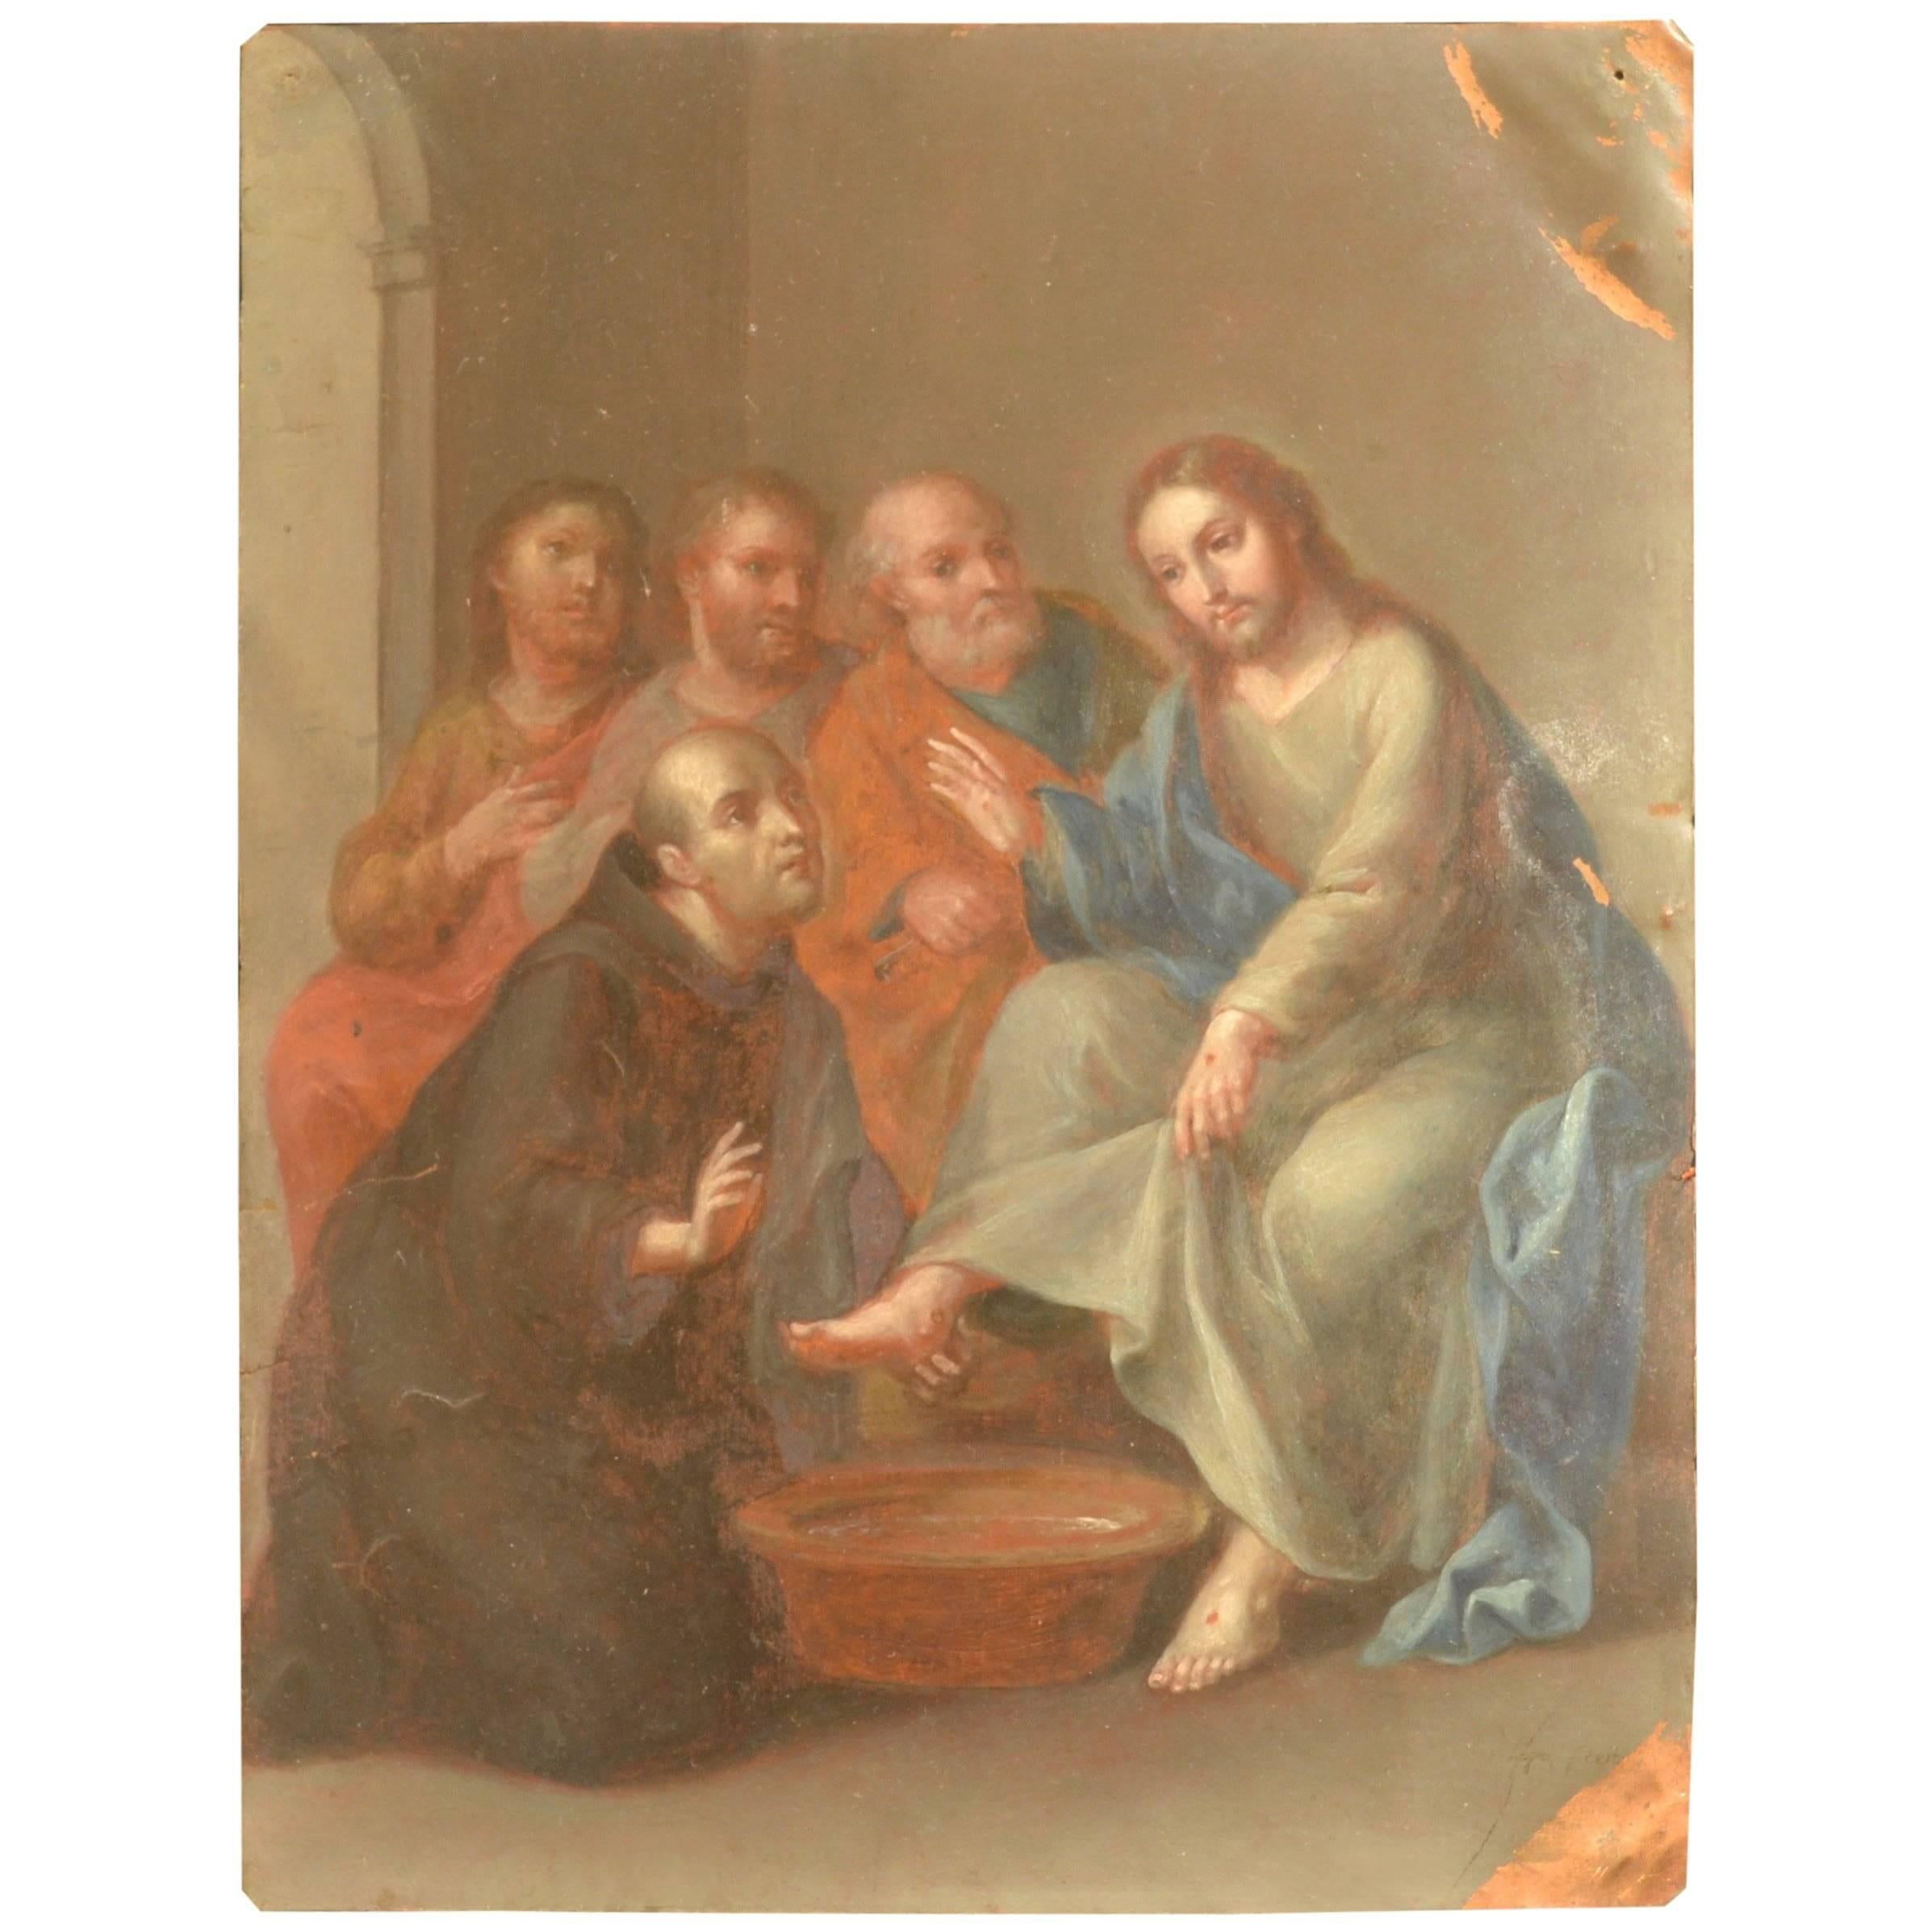 Christ with the apostles by Andres Lopez